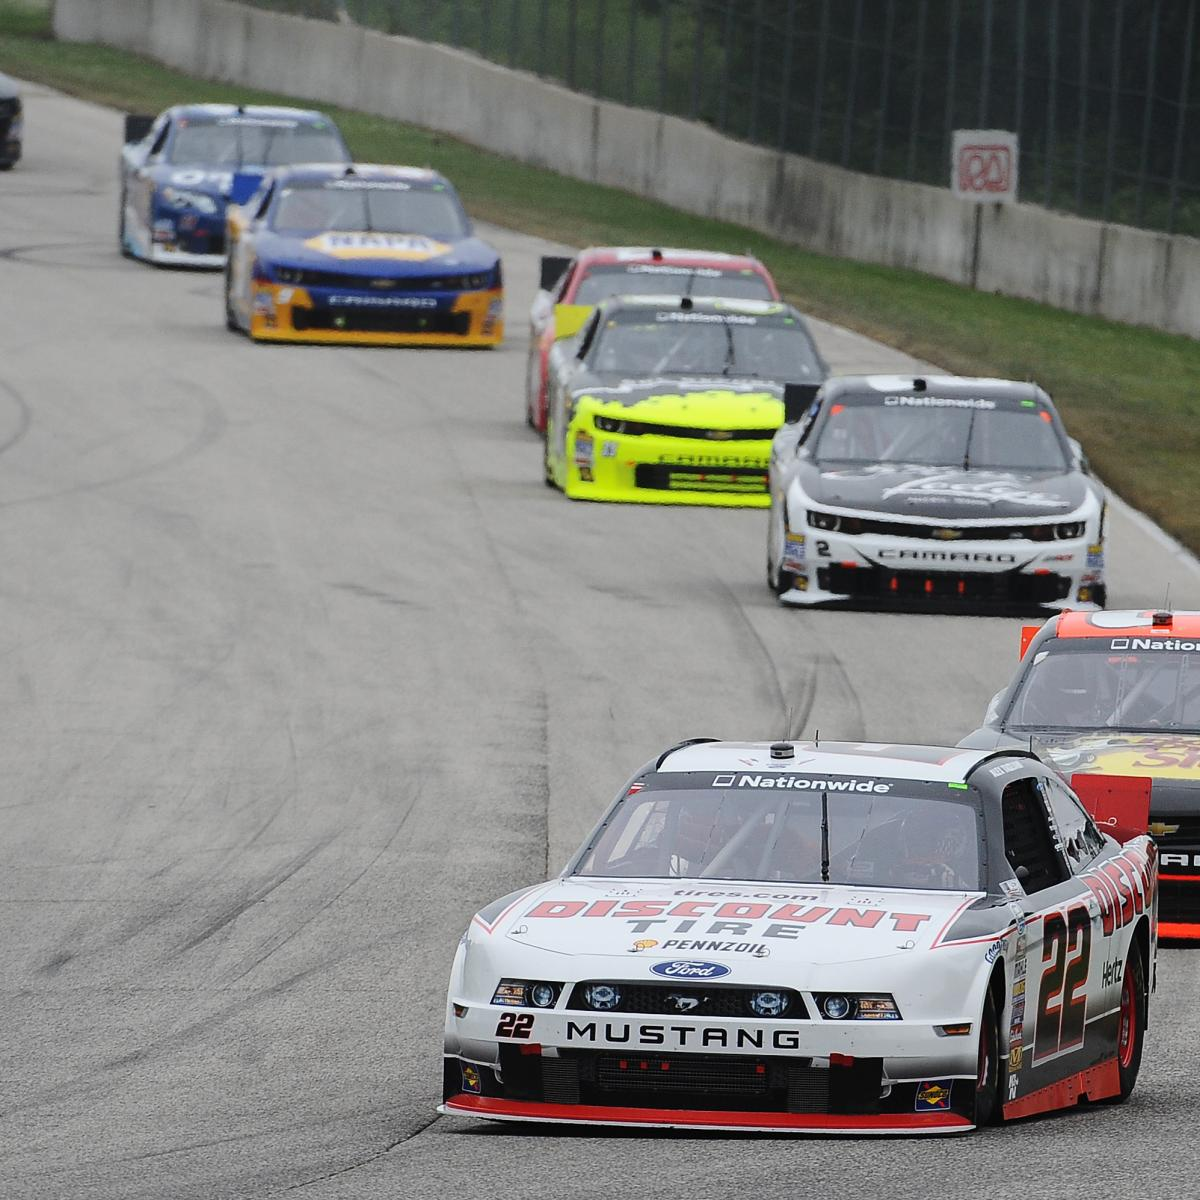 NASCAR Nationwide At Road America 2014 Results: Winner